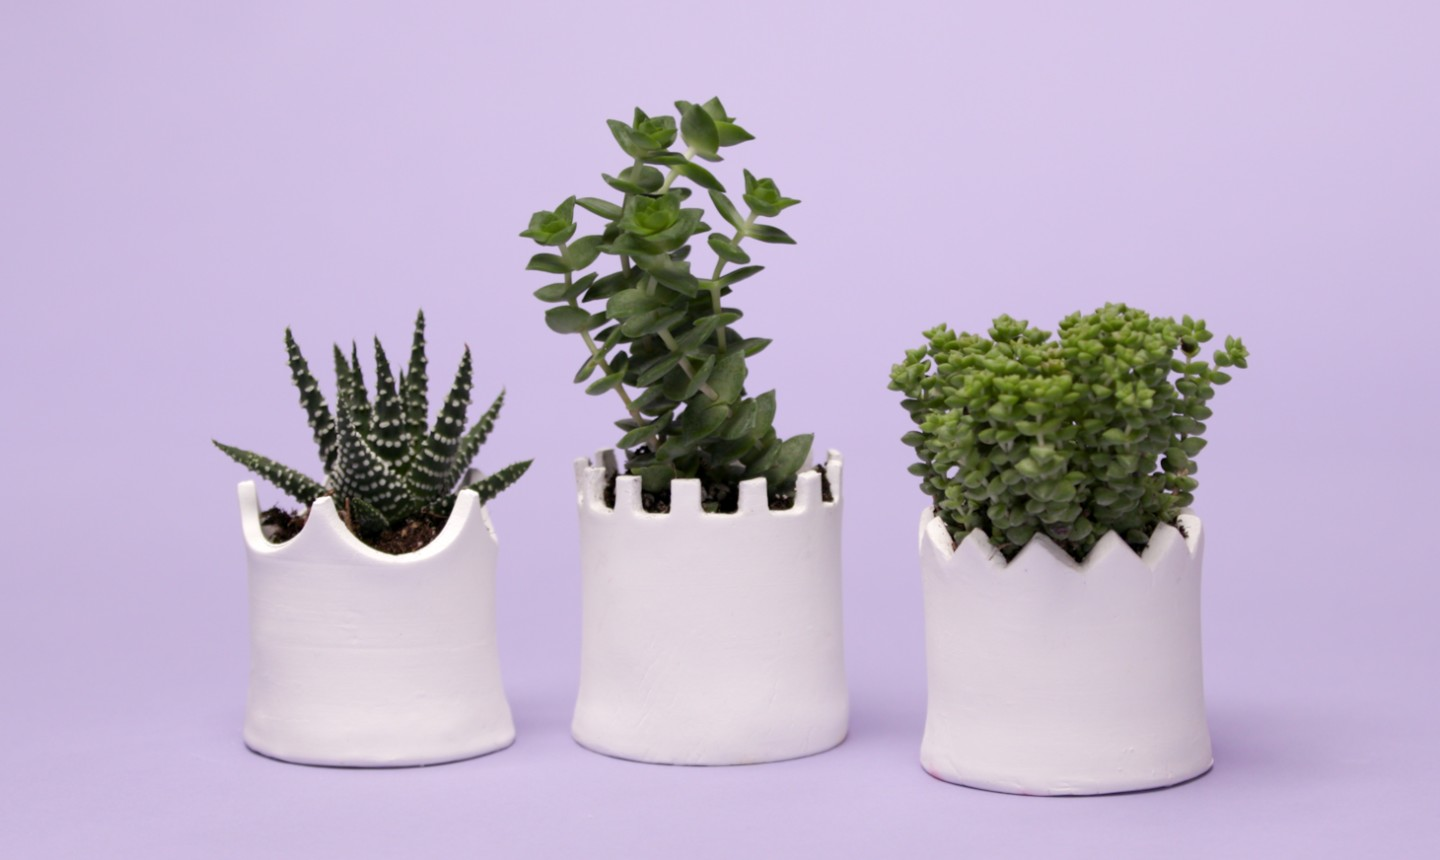 3 white planters with plants